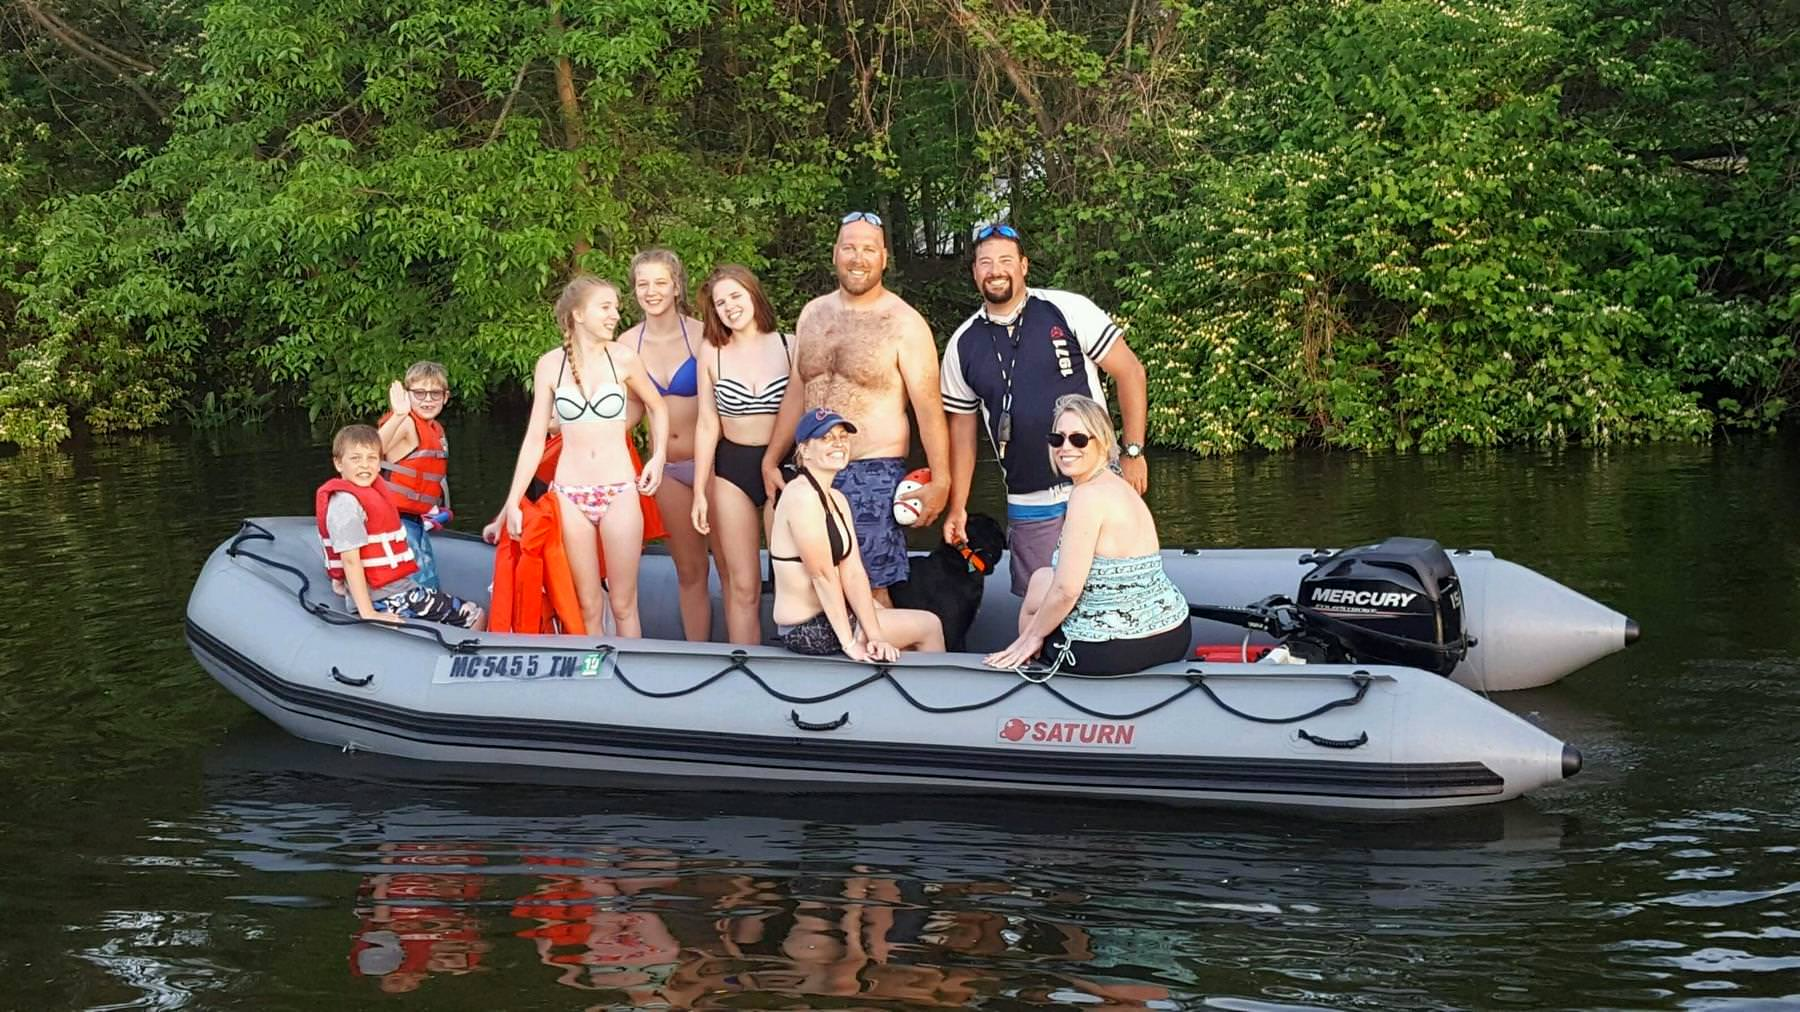 Saturn Inflatable Boat Sd518